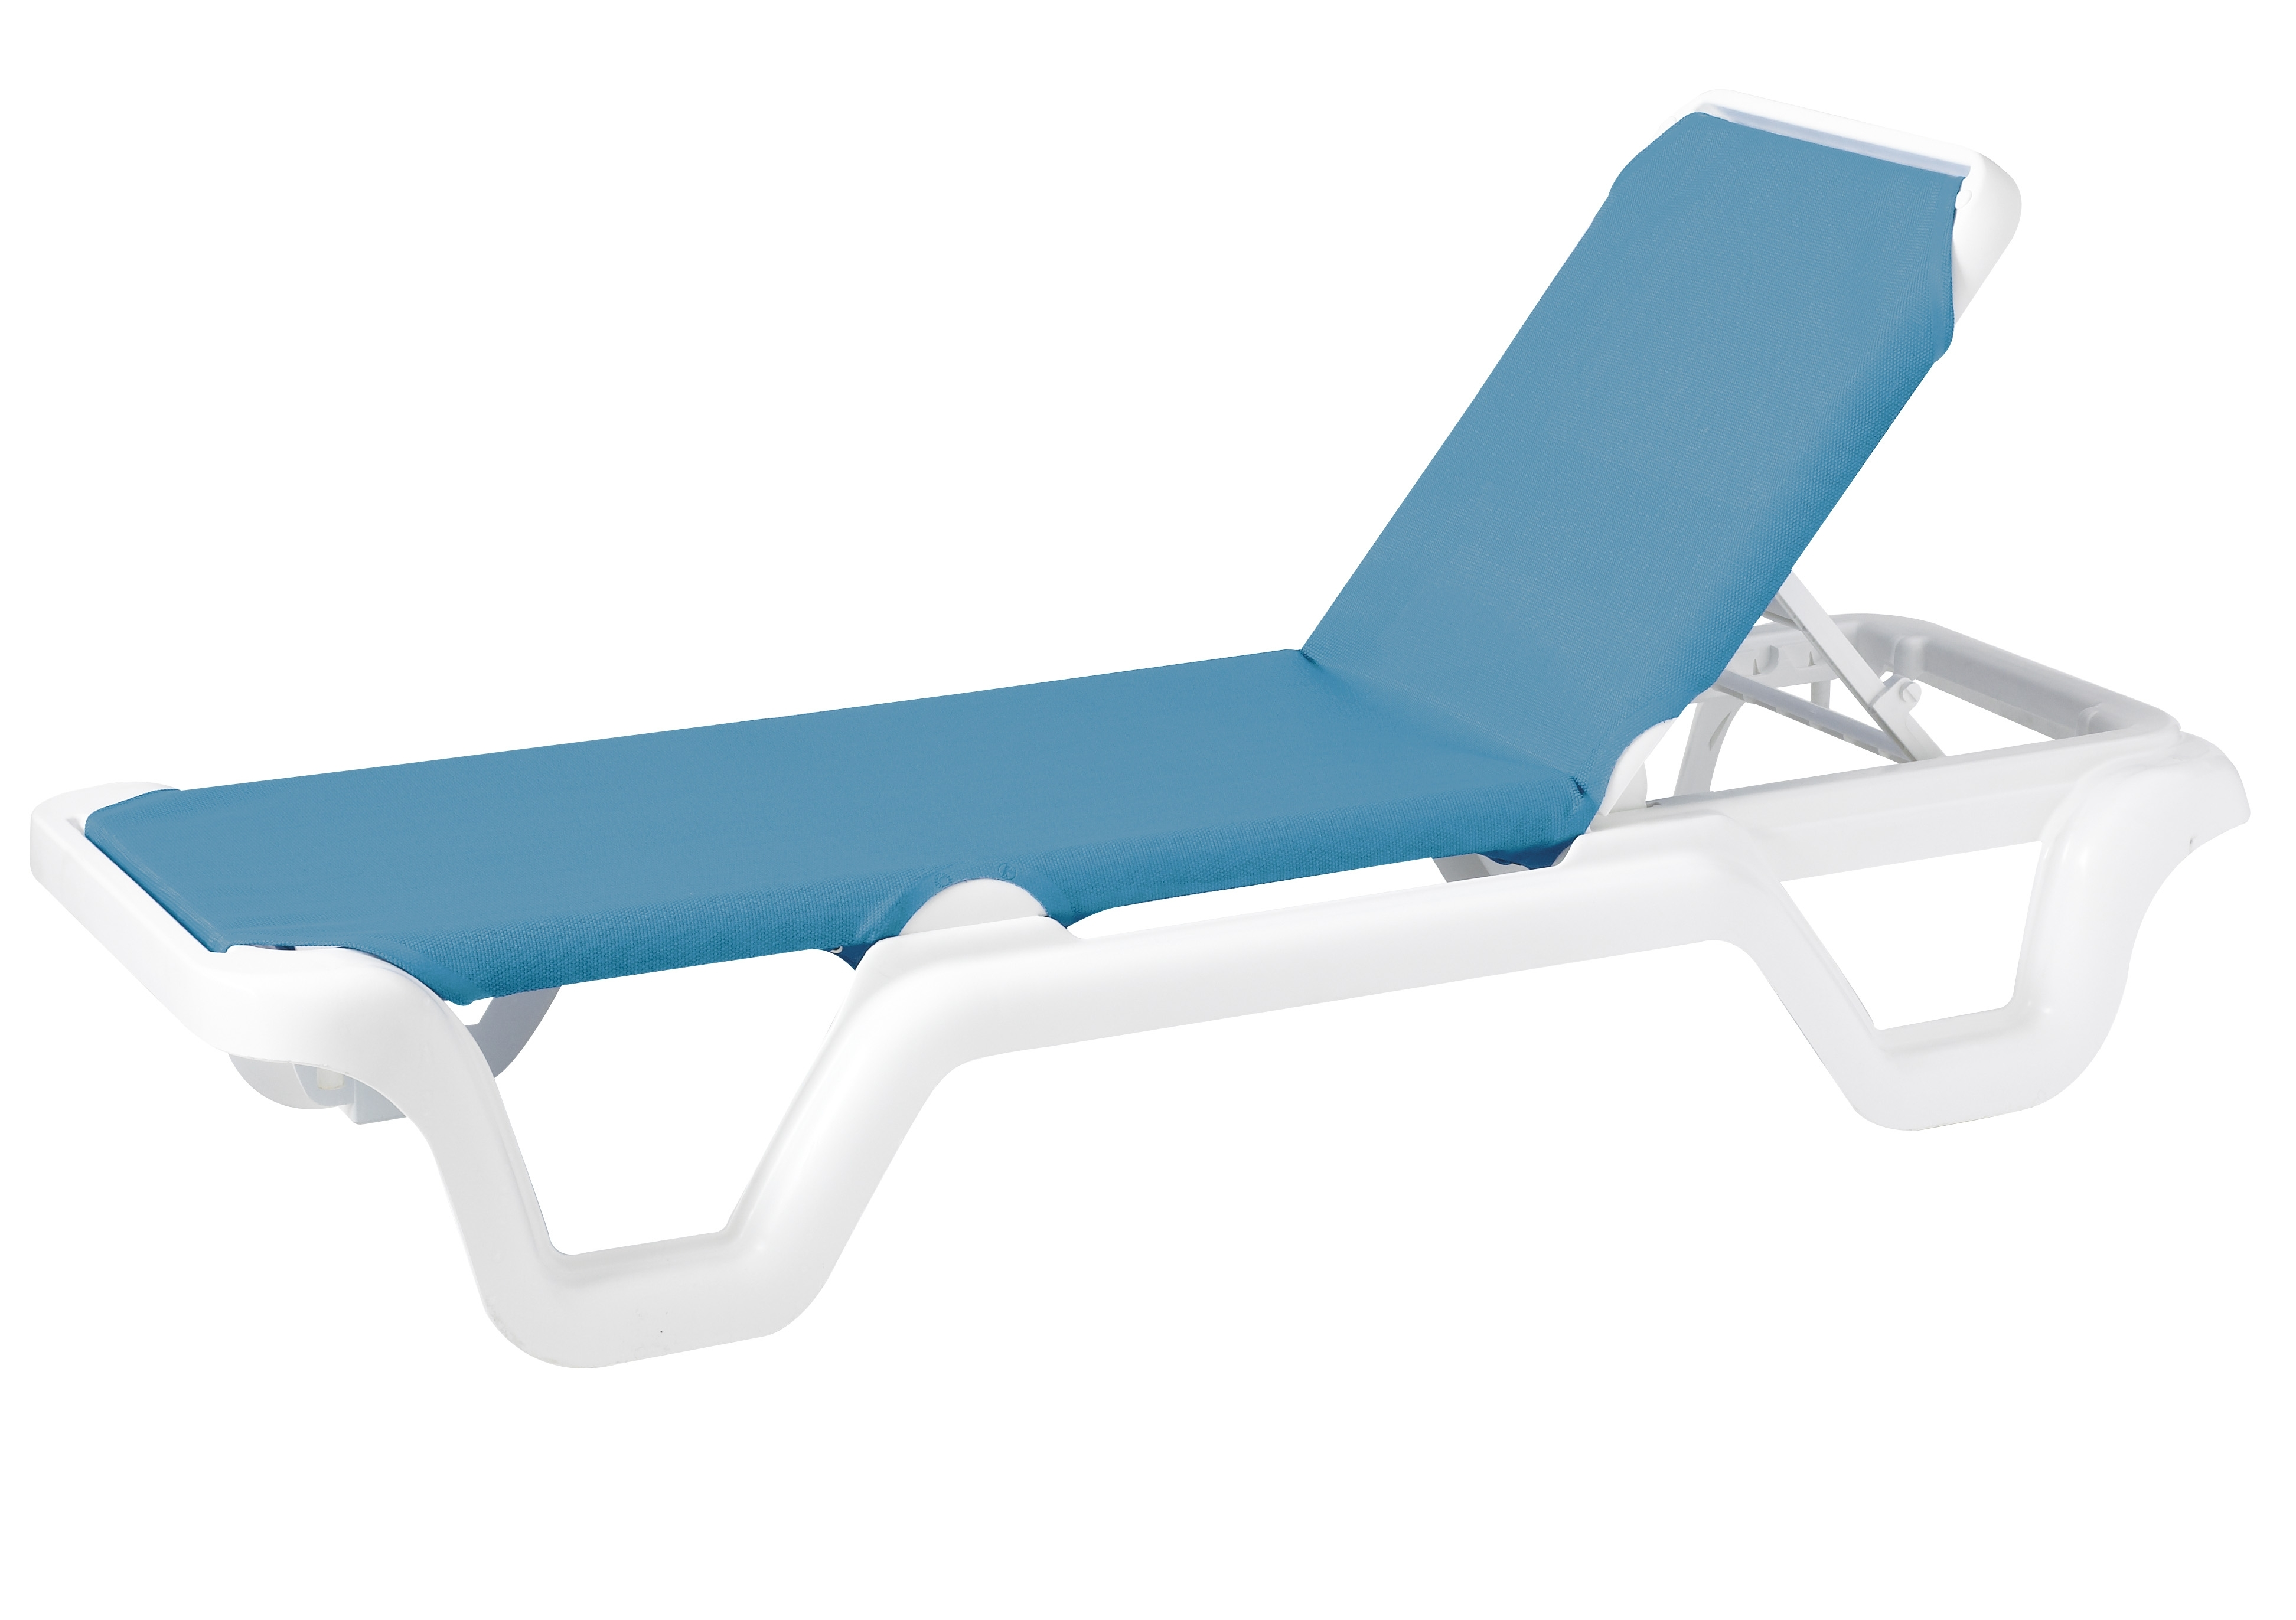 Grosfillex Marina Style Resin Sling Chaise Lounge Chair W/o Arms Pertaining To Most Recently Released Chaise Lounge Chairs Without Arms (View 9 of 15)